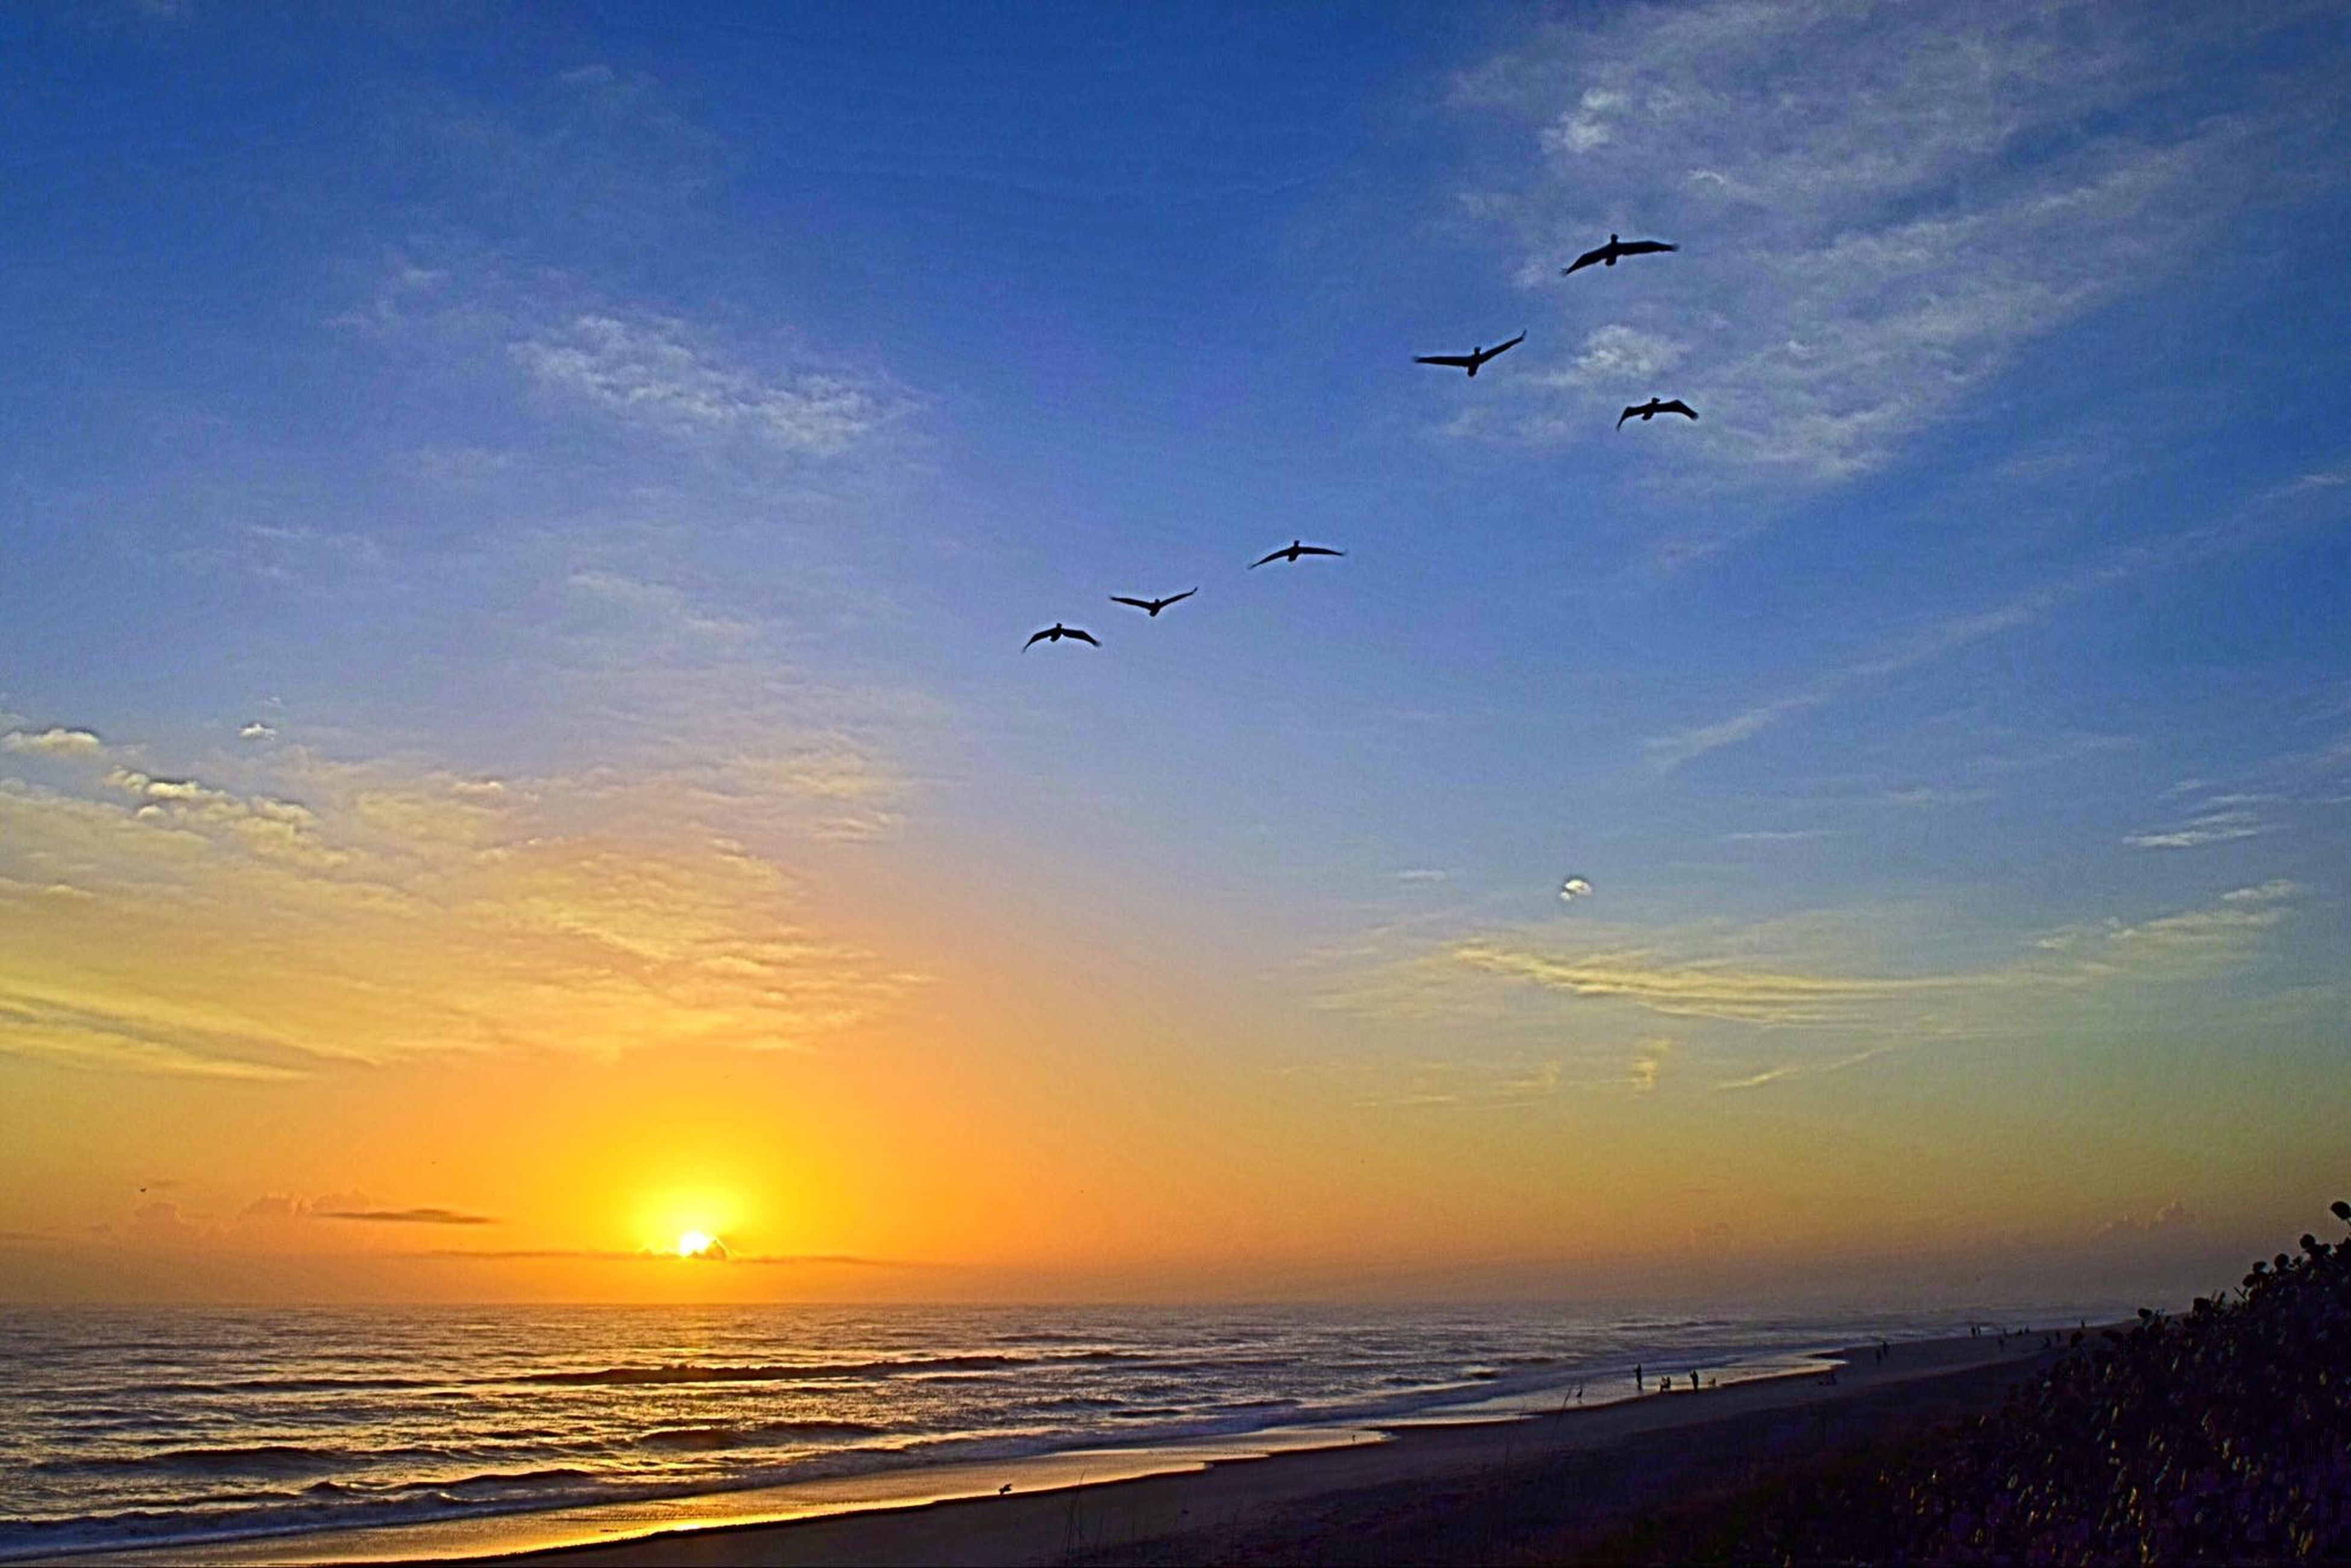 flying, bird, sunset, sea, beauty in nature, nature, sky, flock of birds, animals in the wild, beach, silhouette, water, scenics, animal themes, large group of animals, mid-air, migrating, outdoors, horizon over water, no people, spread wings, day